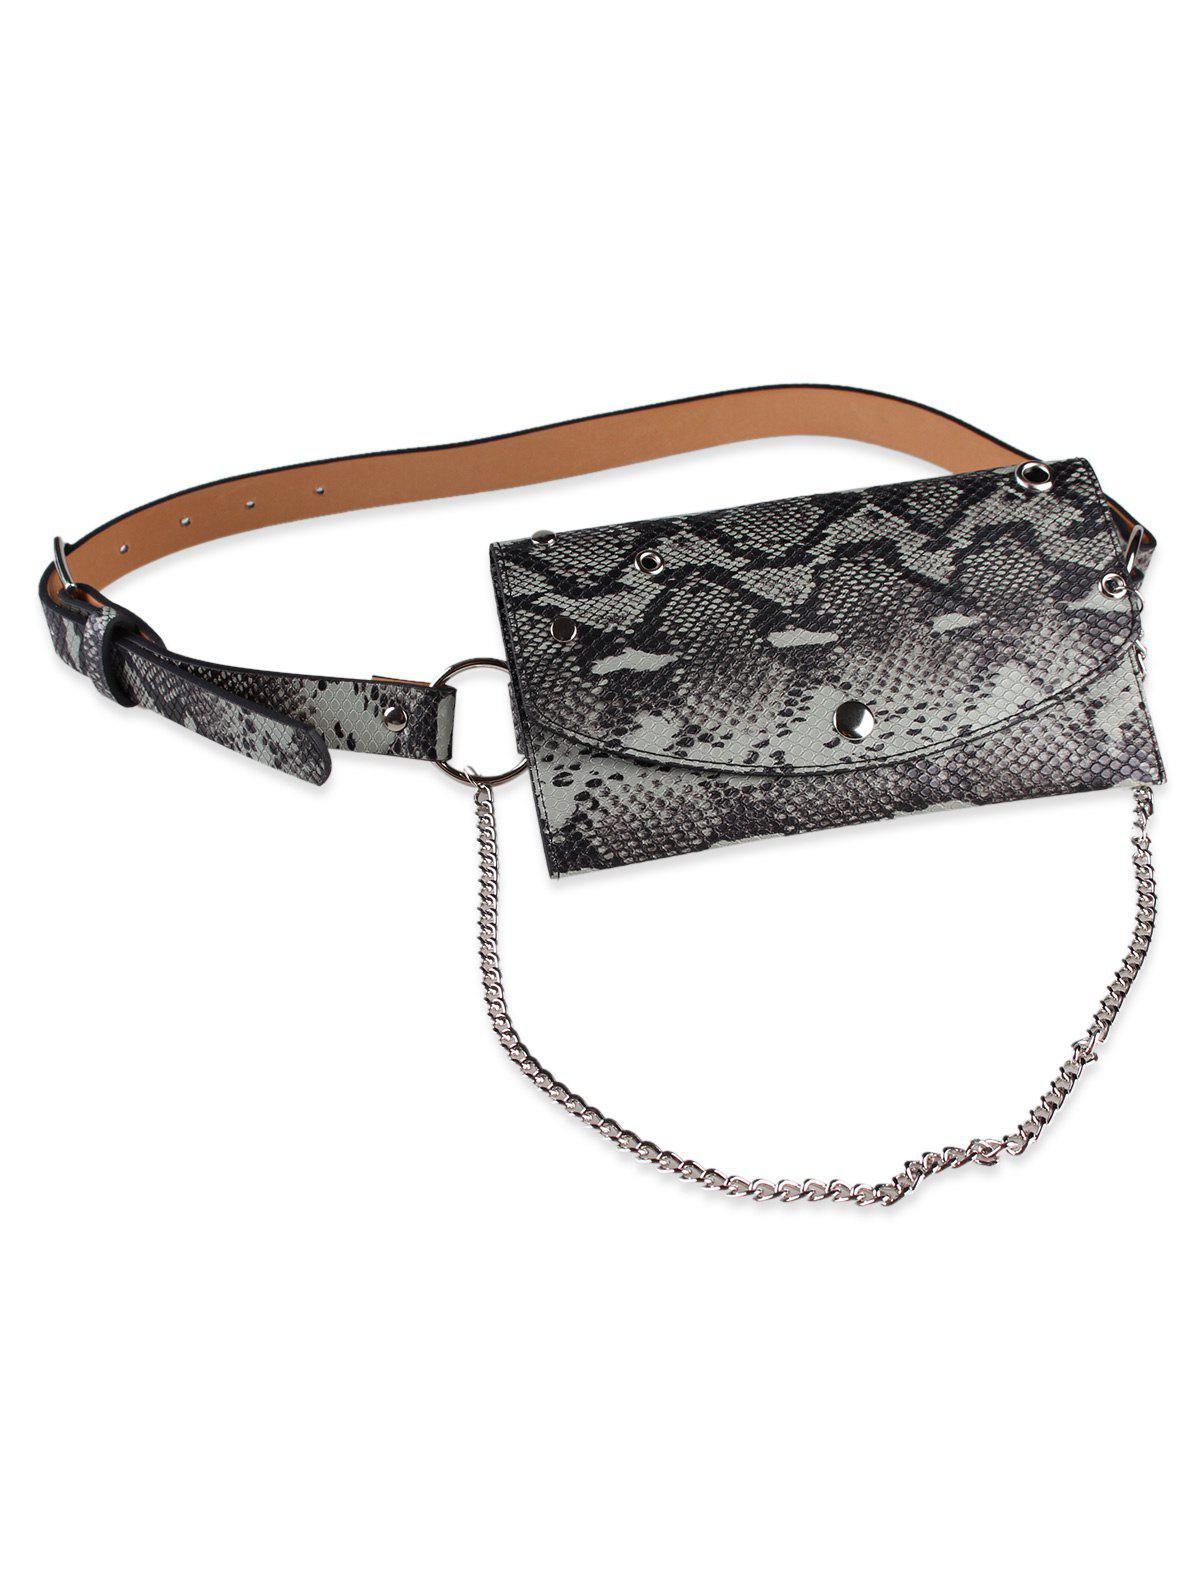 Affordable Vintage Pin Fanny Pack Embellished Chain Belt Bag